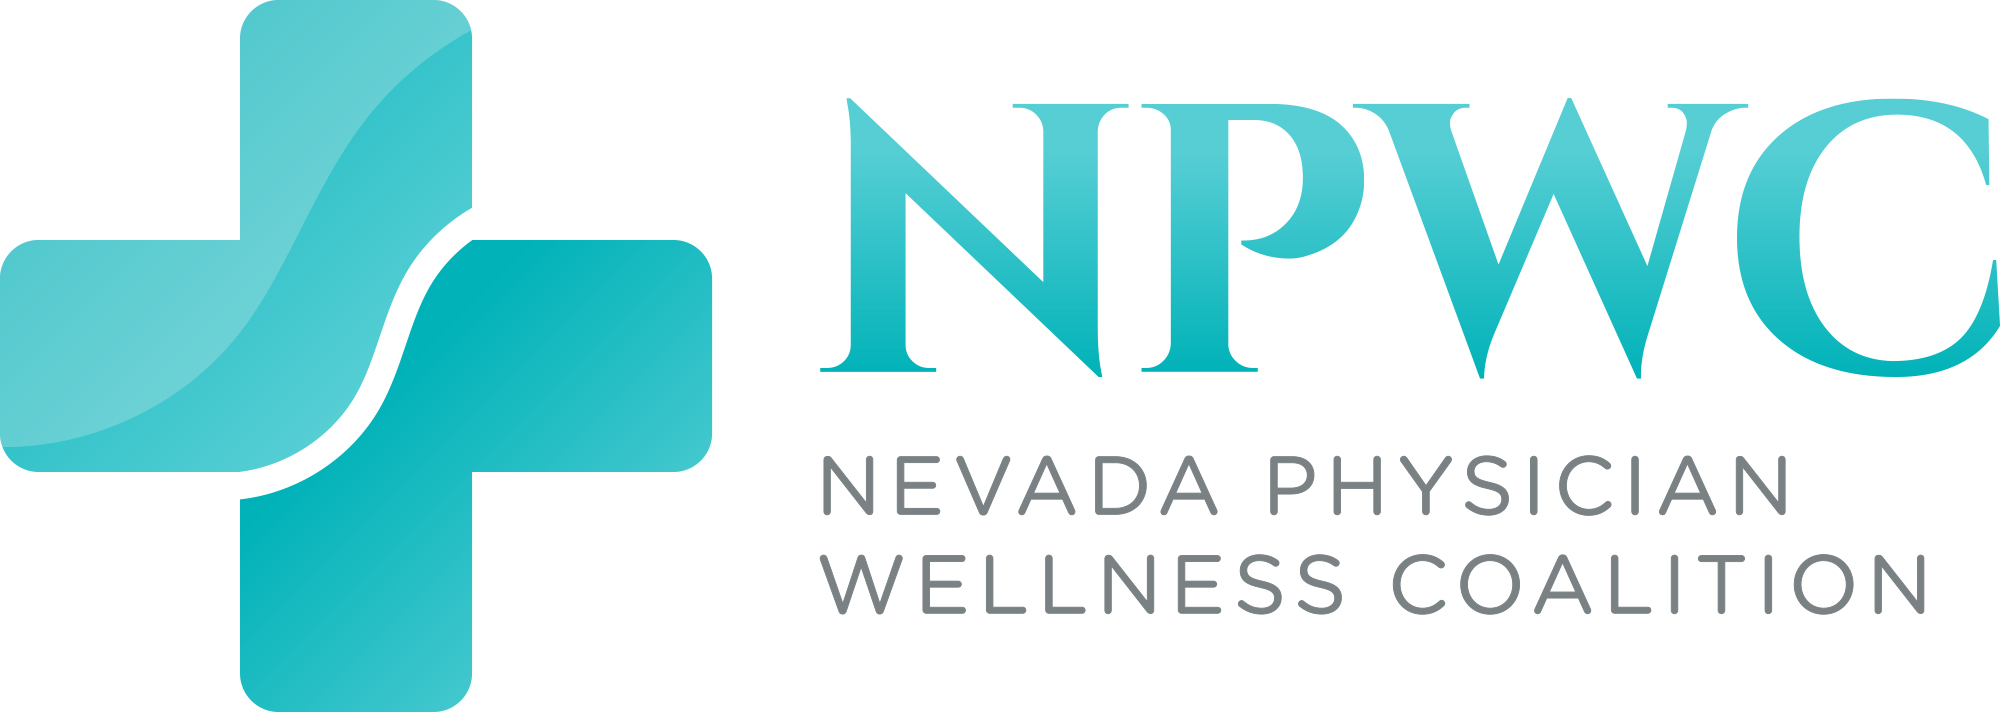 Nevada Physician Wellness Coalition logo